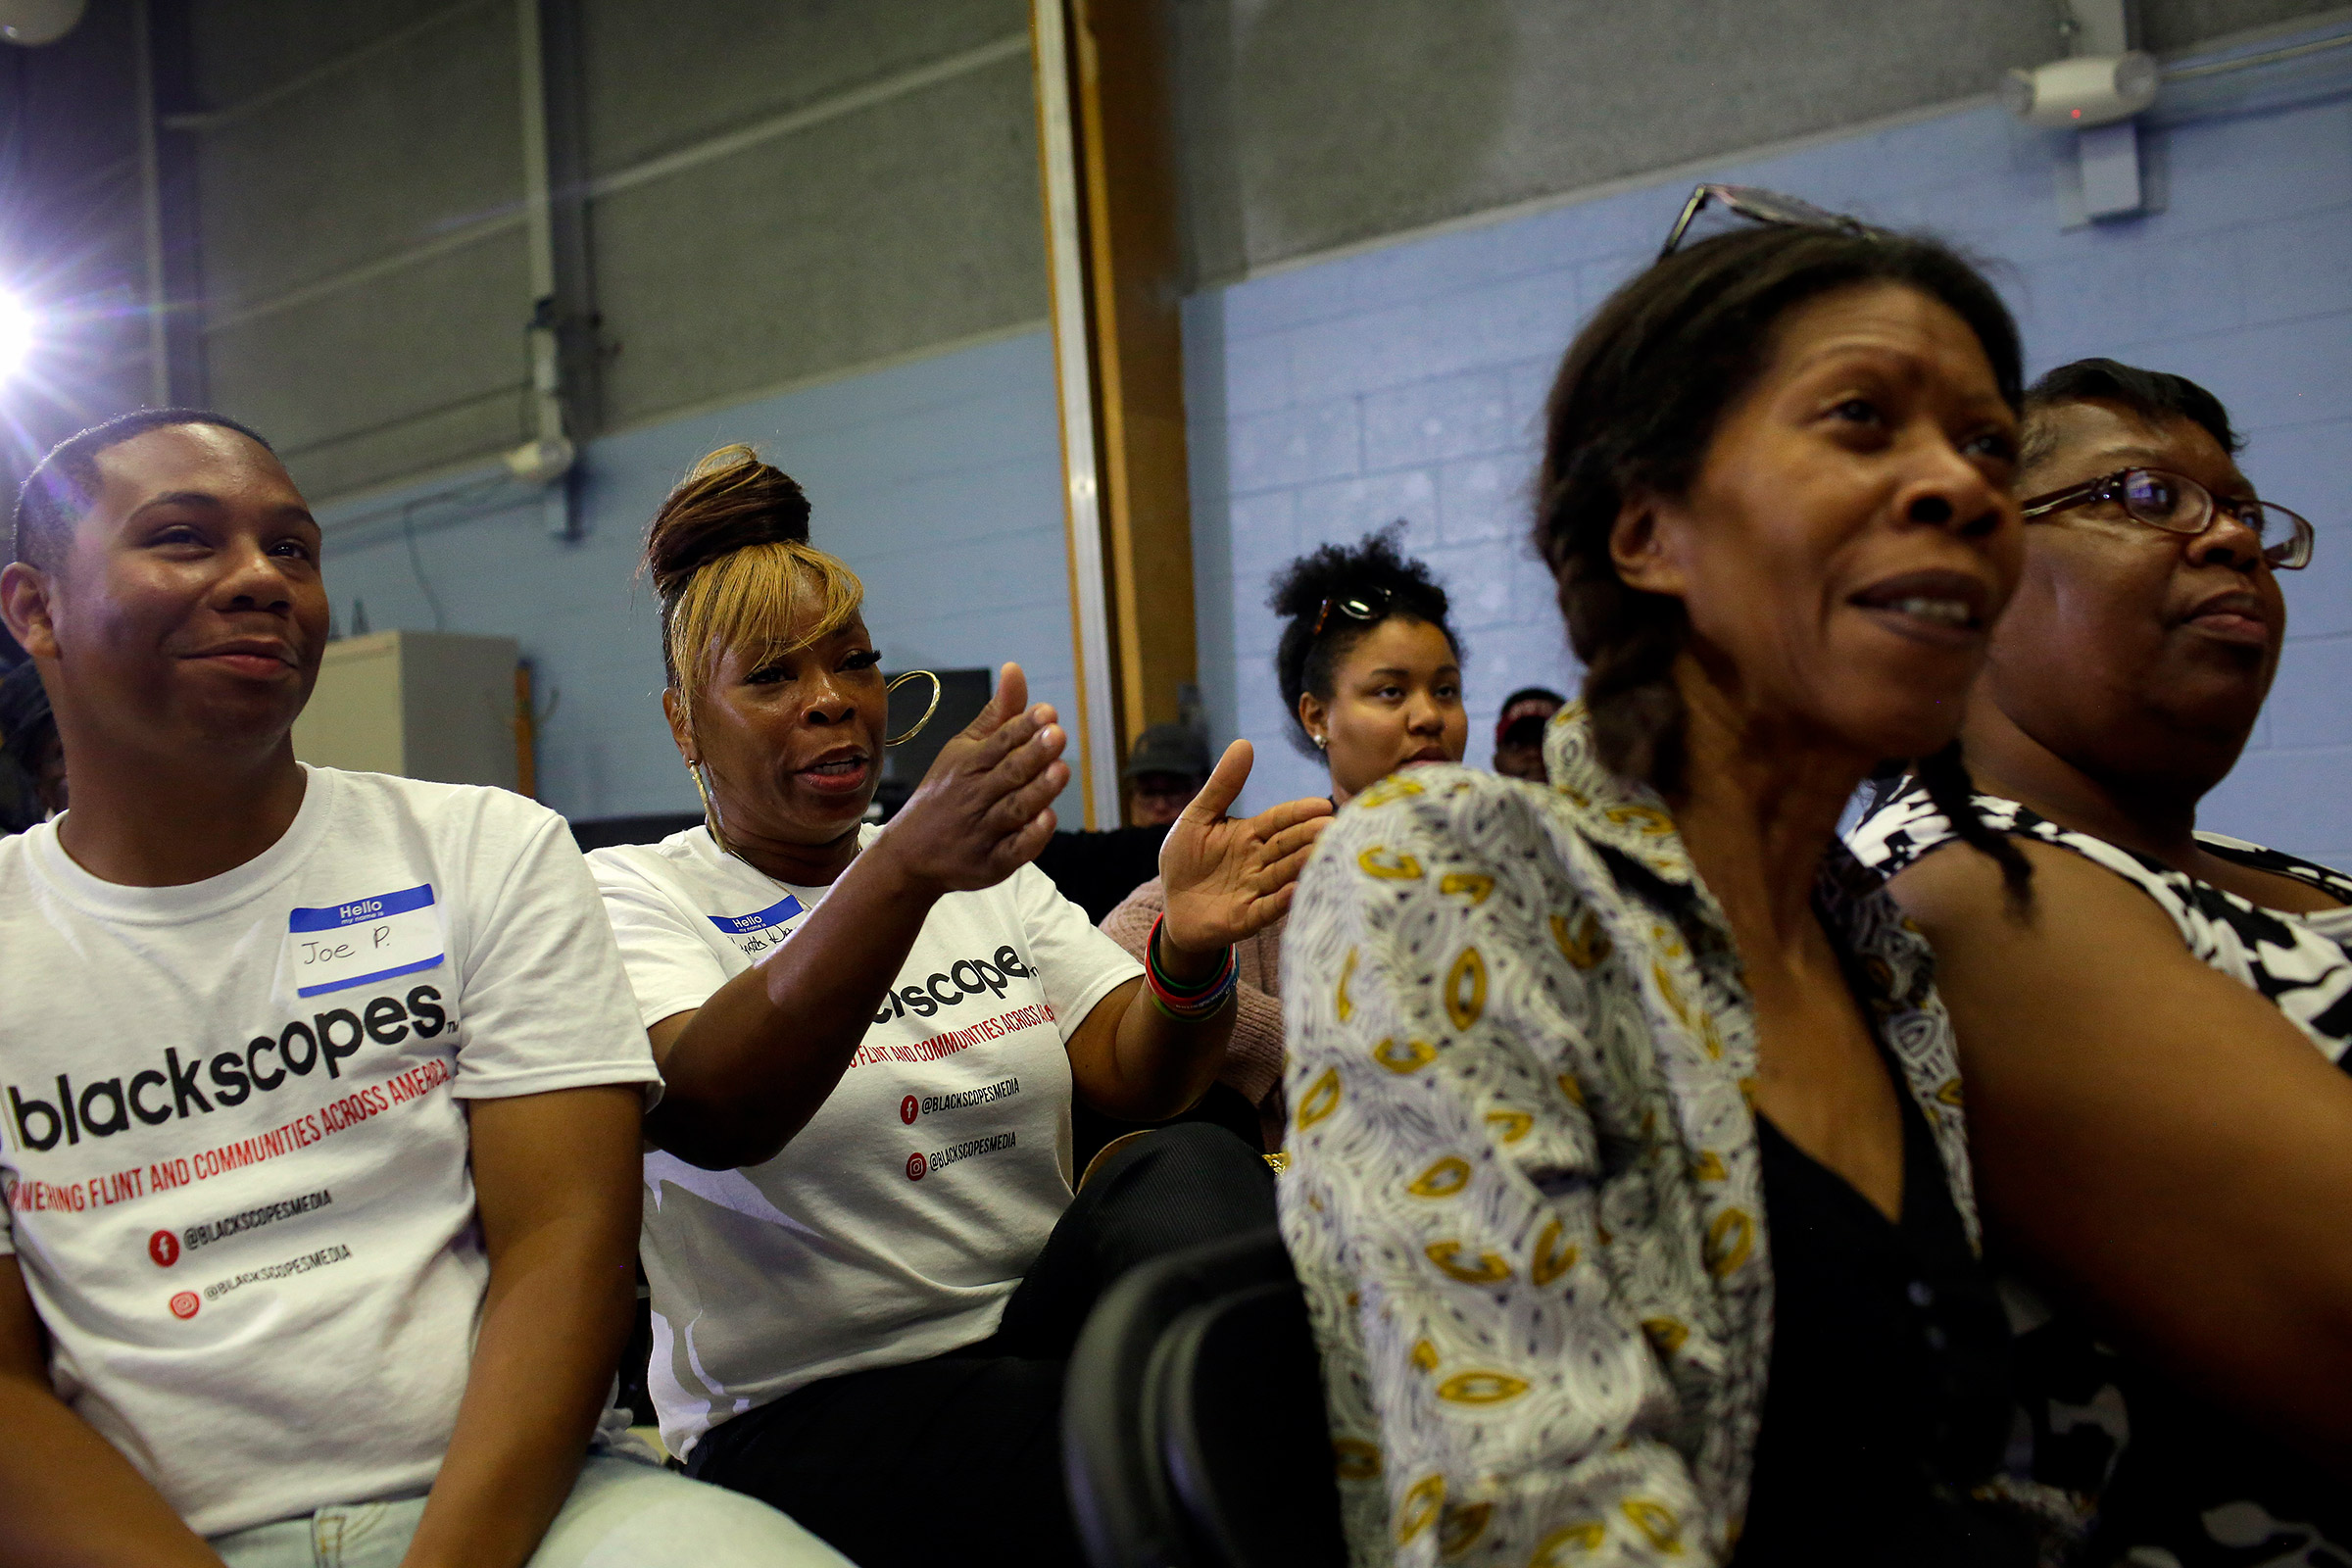 The voters at the watch party hosted by Black Voters Matter— a voter mobilization and advocacy organization— seemed intrigued by less mainstream Democrats, like businessman Andrew Yang and Rep. Tulsi Gabbard.